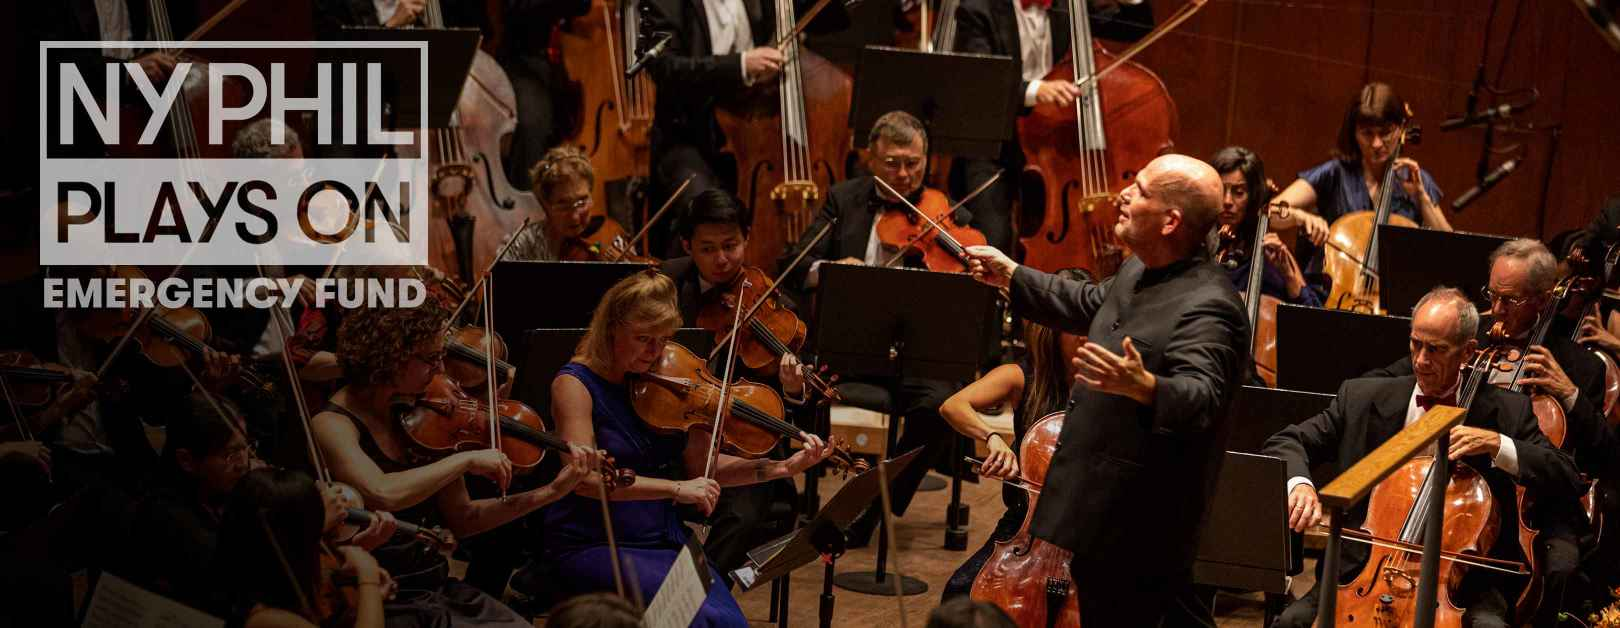 NY Phil Plays On Emergency Fund